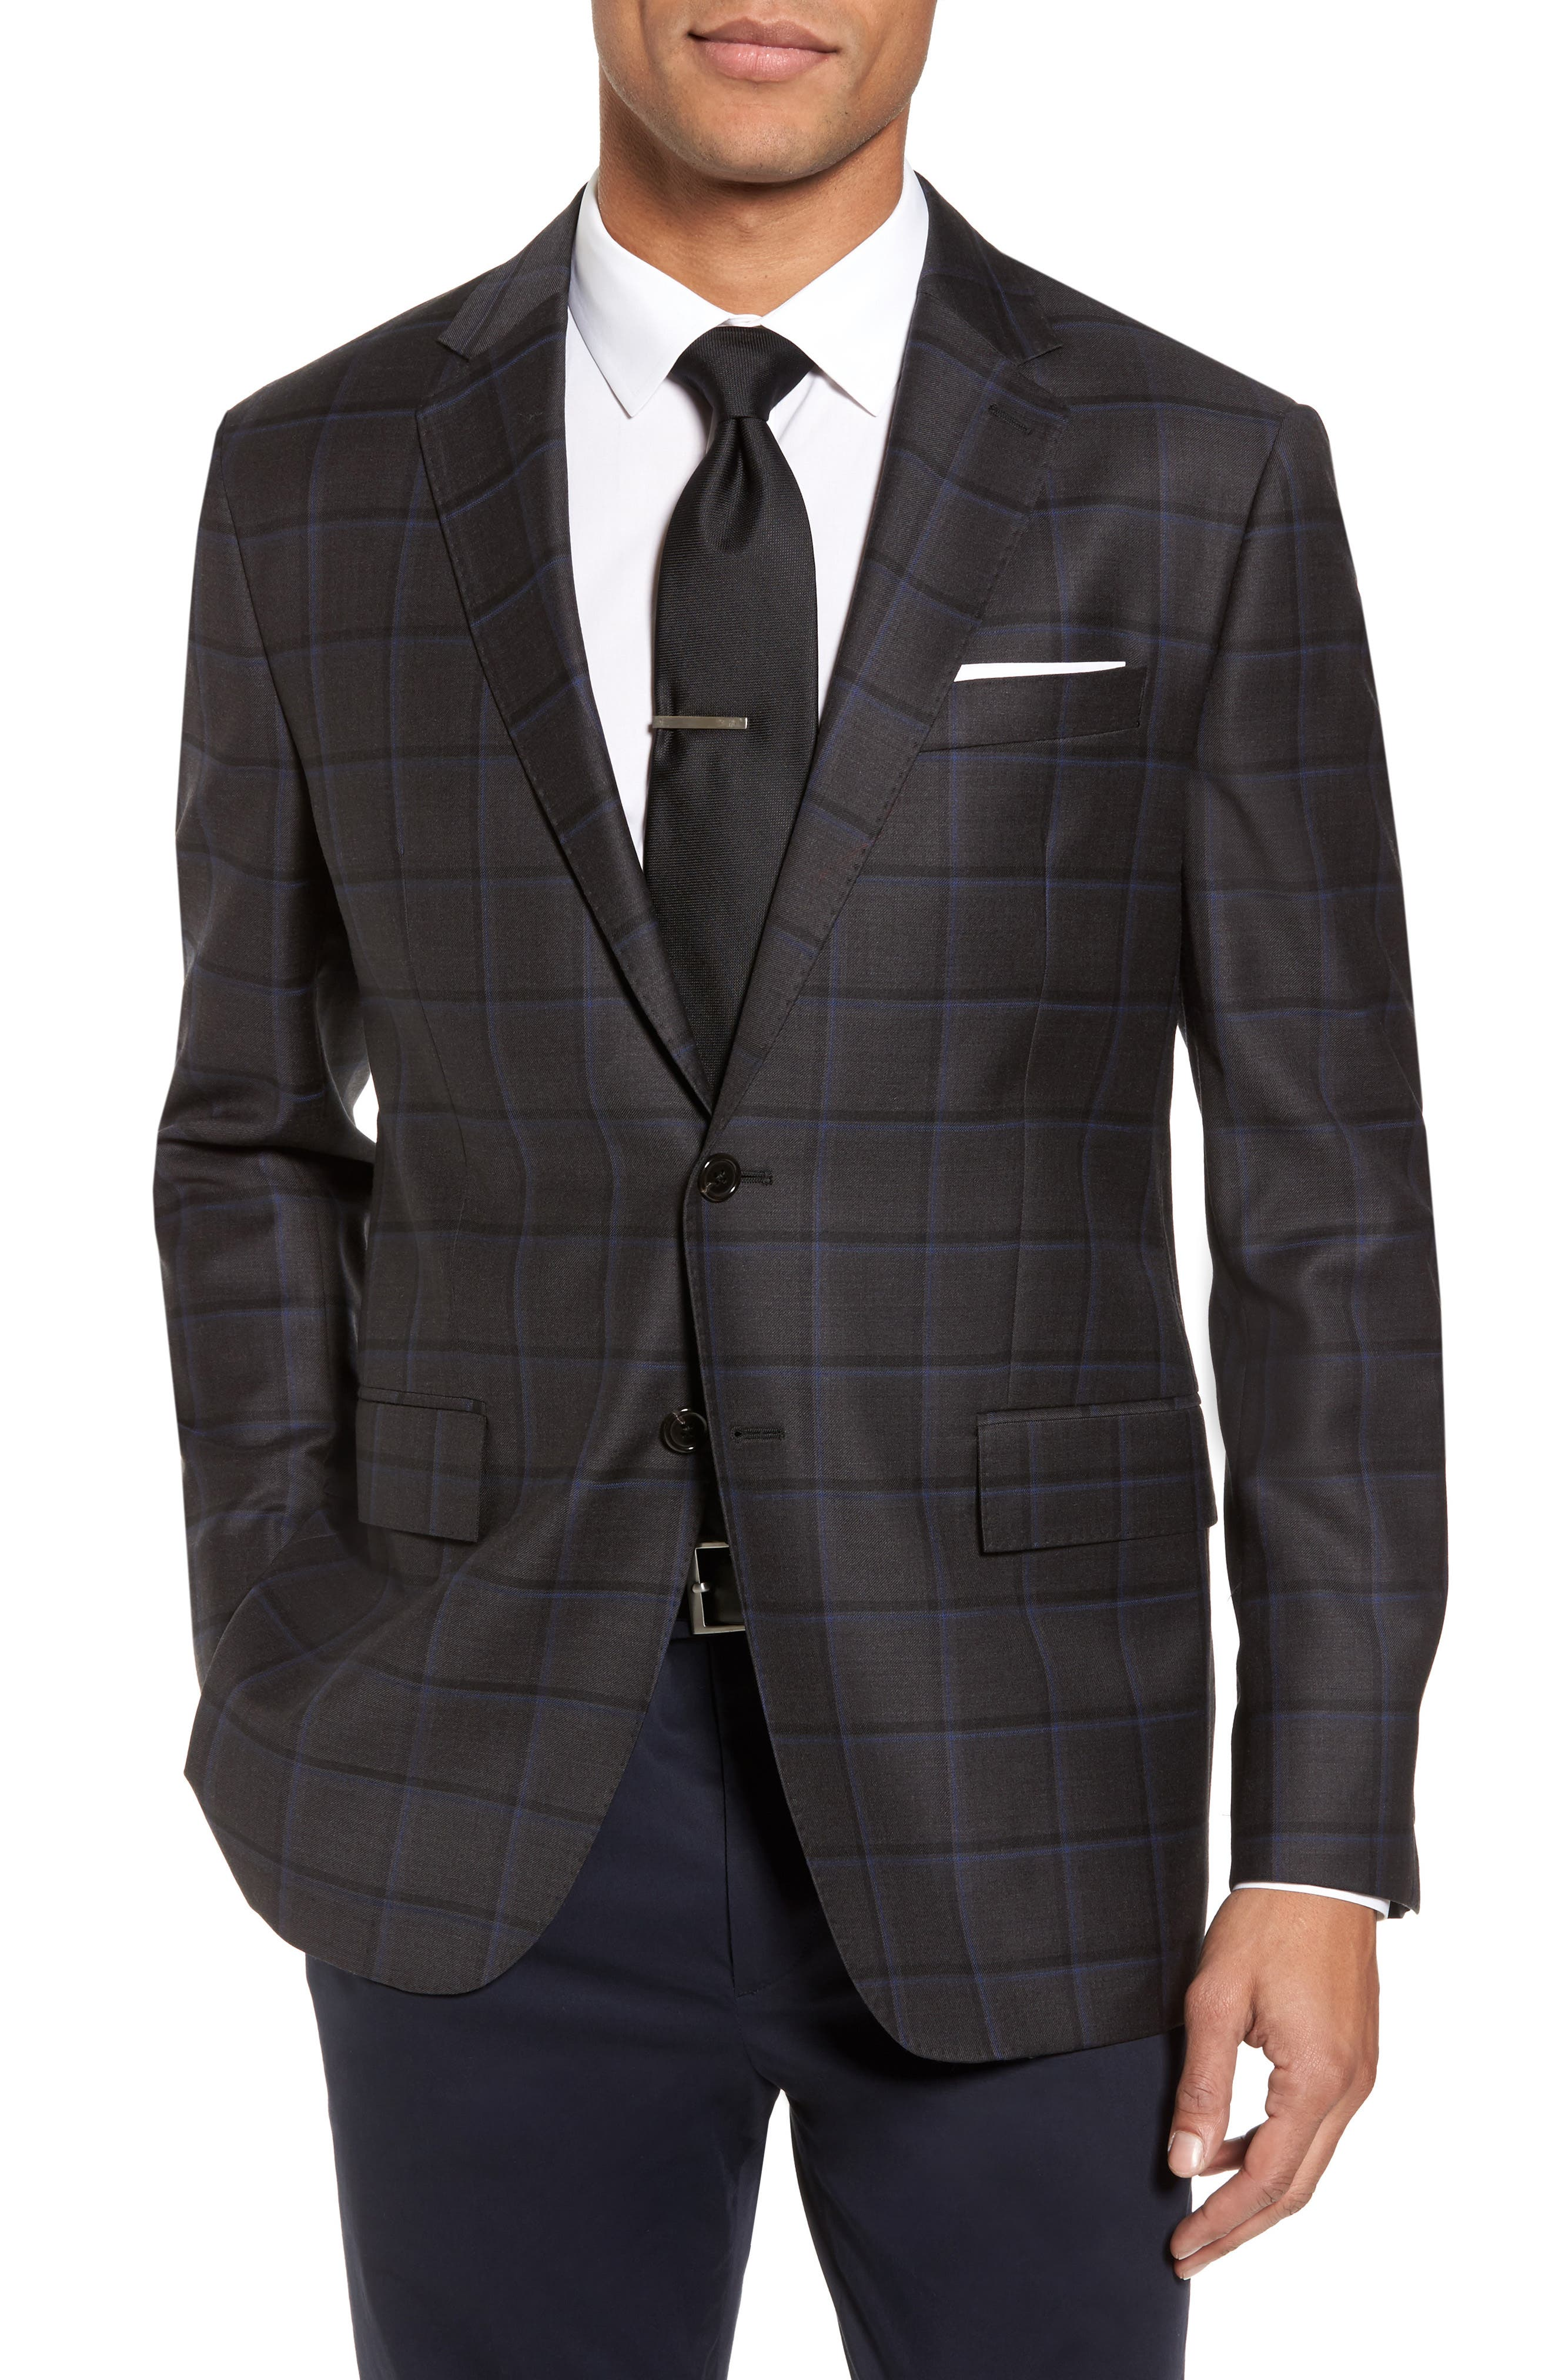 Todd Snyder White Label Trim Fit Windowpane Wool Sport Coat